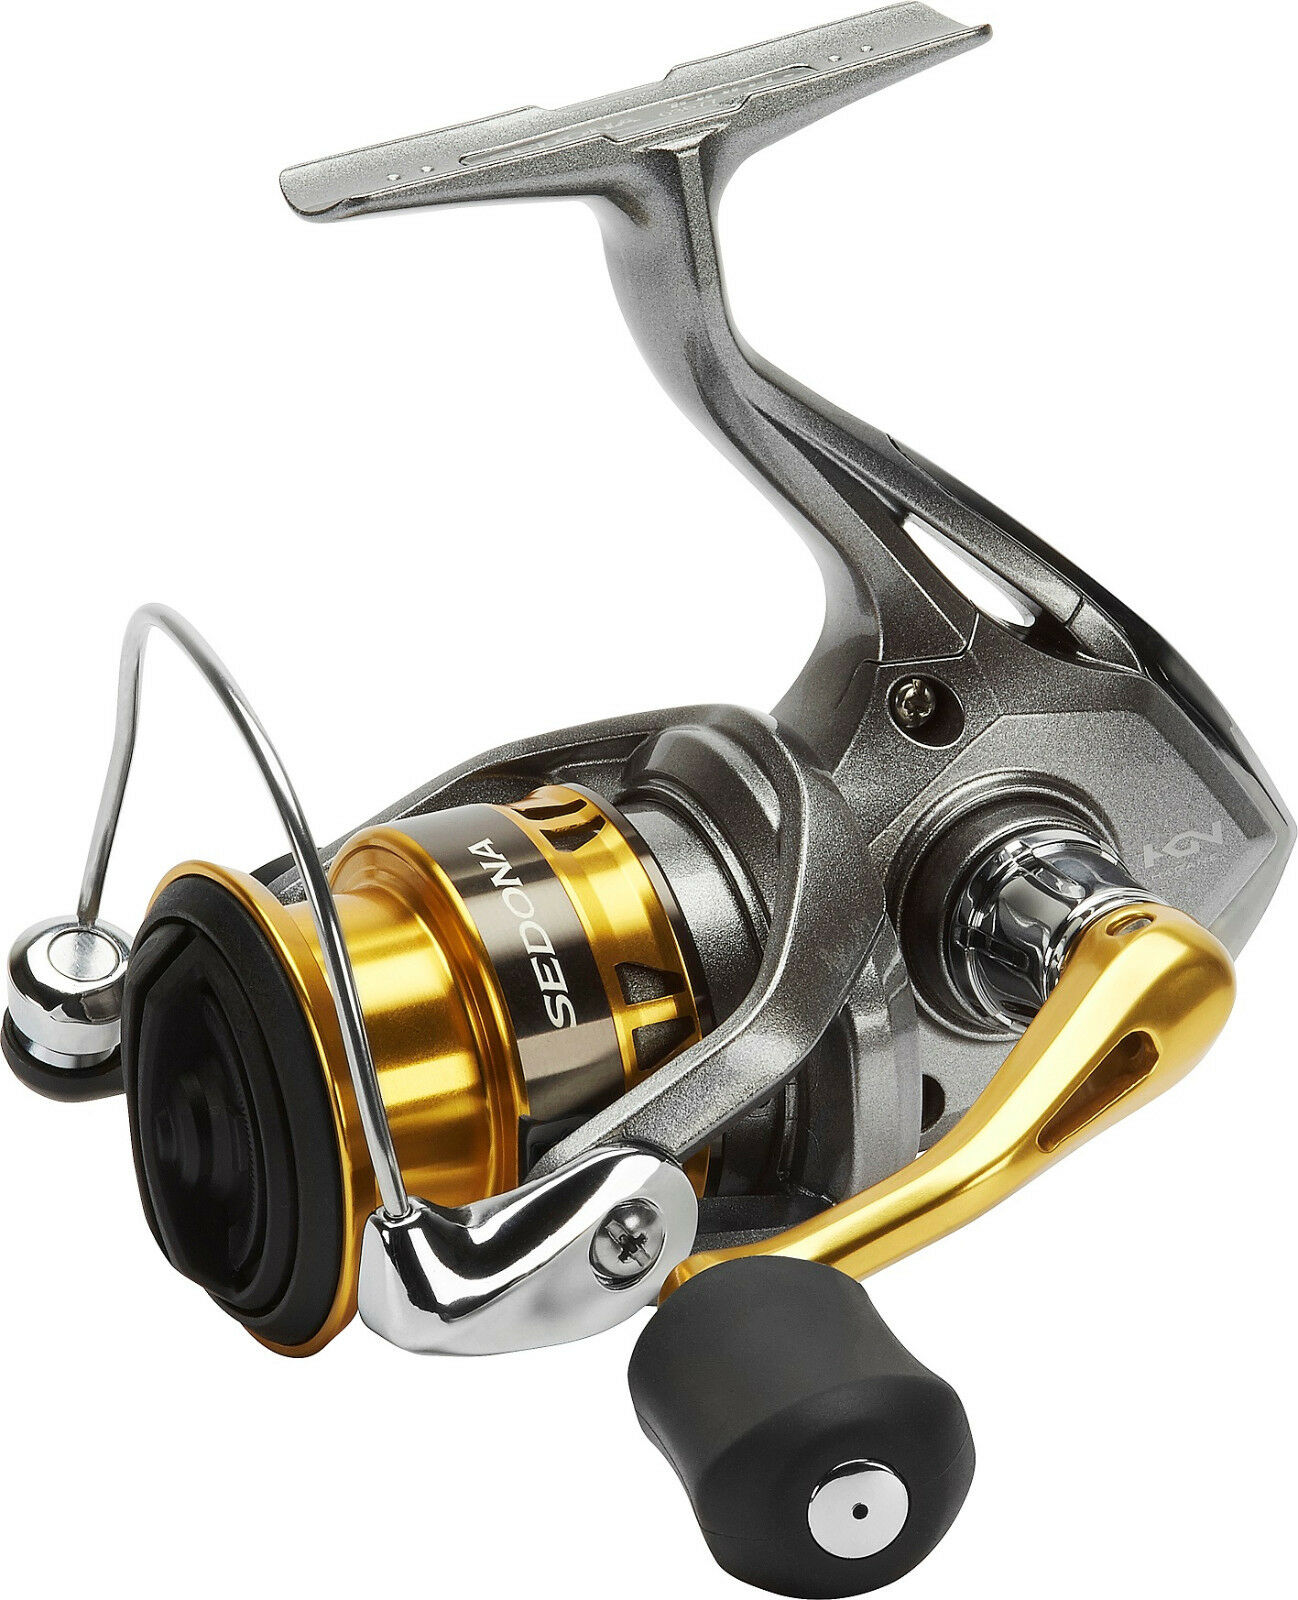 Shimano Sedona 1000 FI, Spinning reel with front  drag, SE1000FI  free delivery